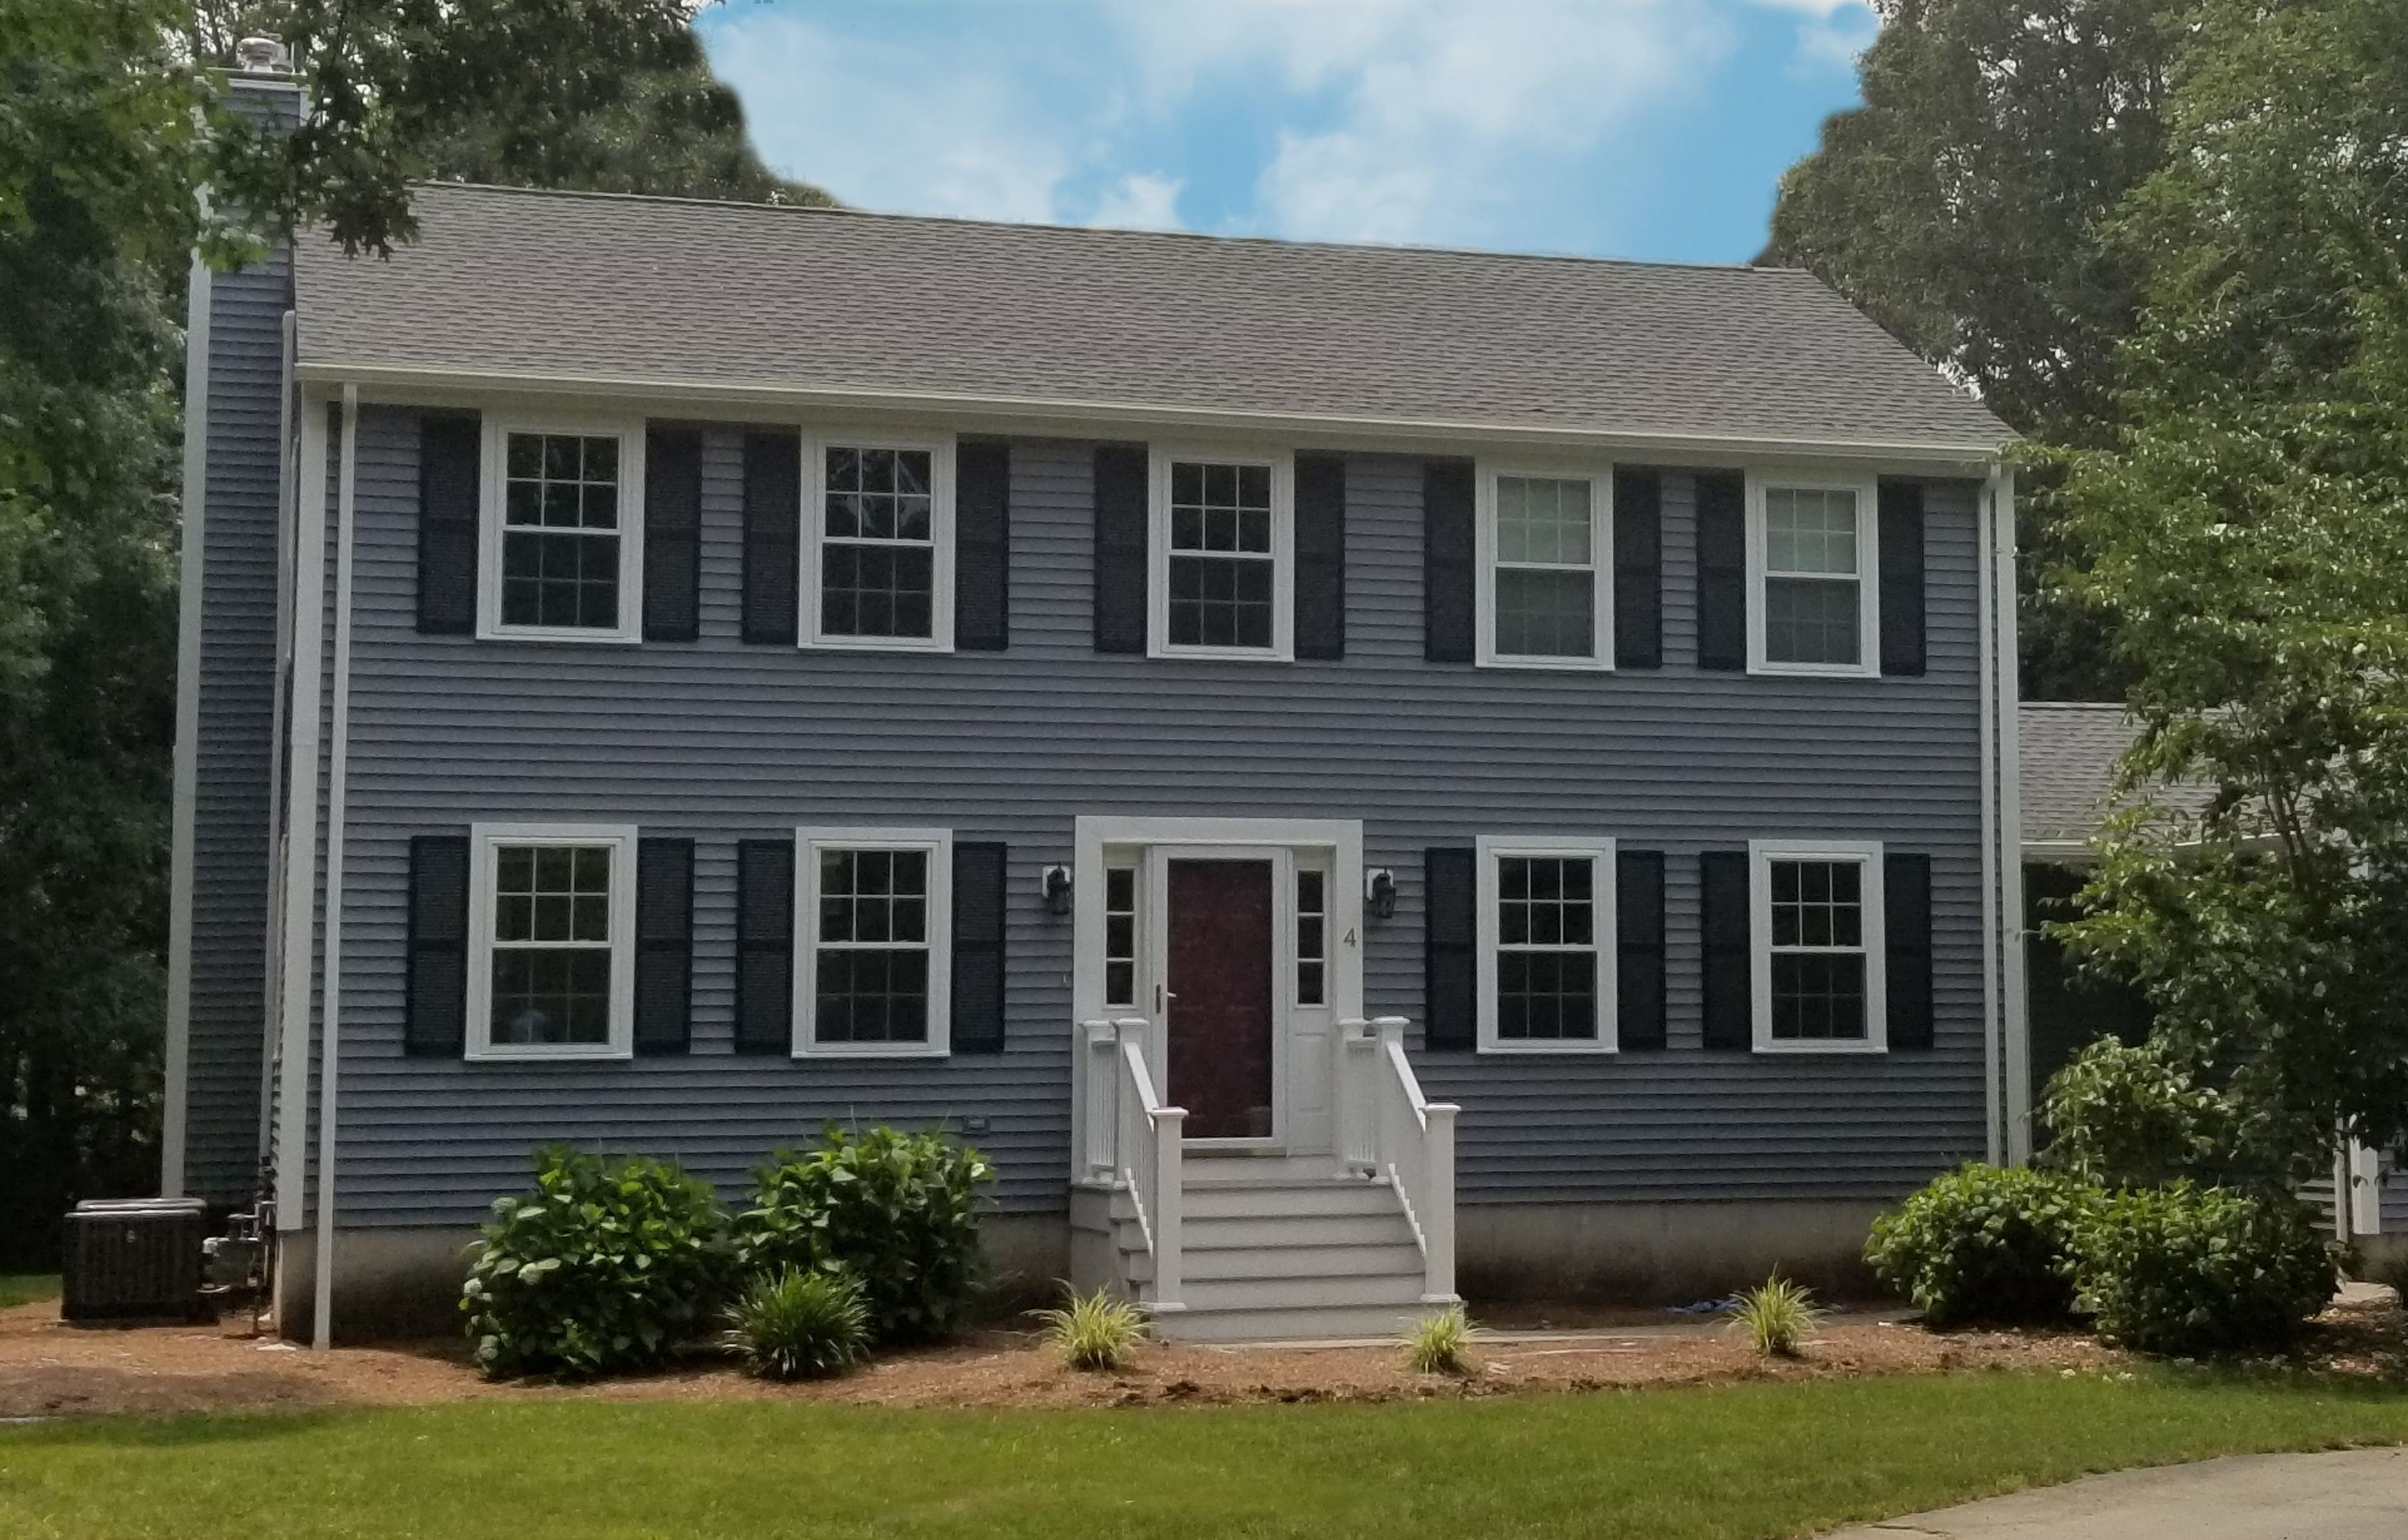 Gaf Roofing Harvey Windows Mastic Vinyl Siding Azek Decking Dartmouth Ma Roofing Mastic Vinyl Siding Vinyl Siding